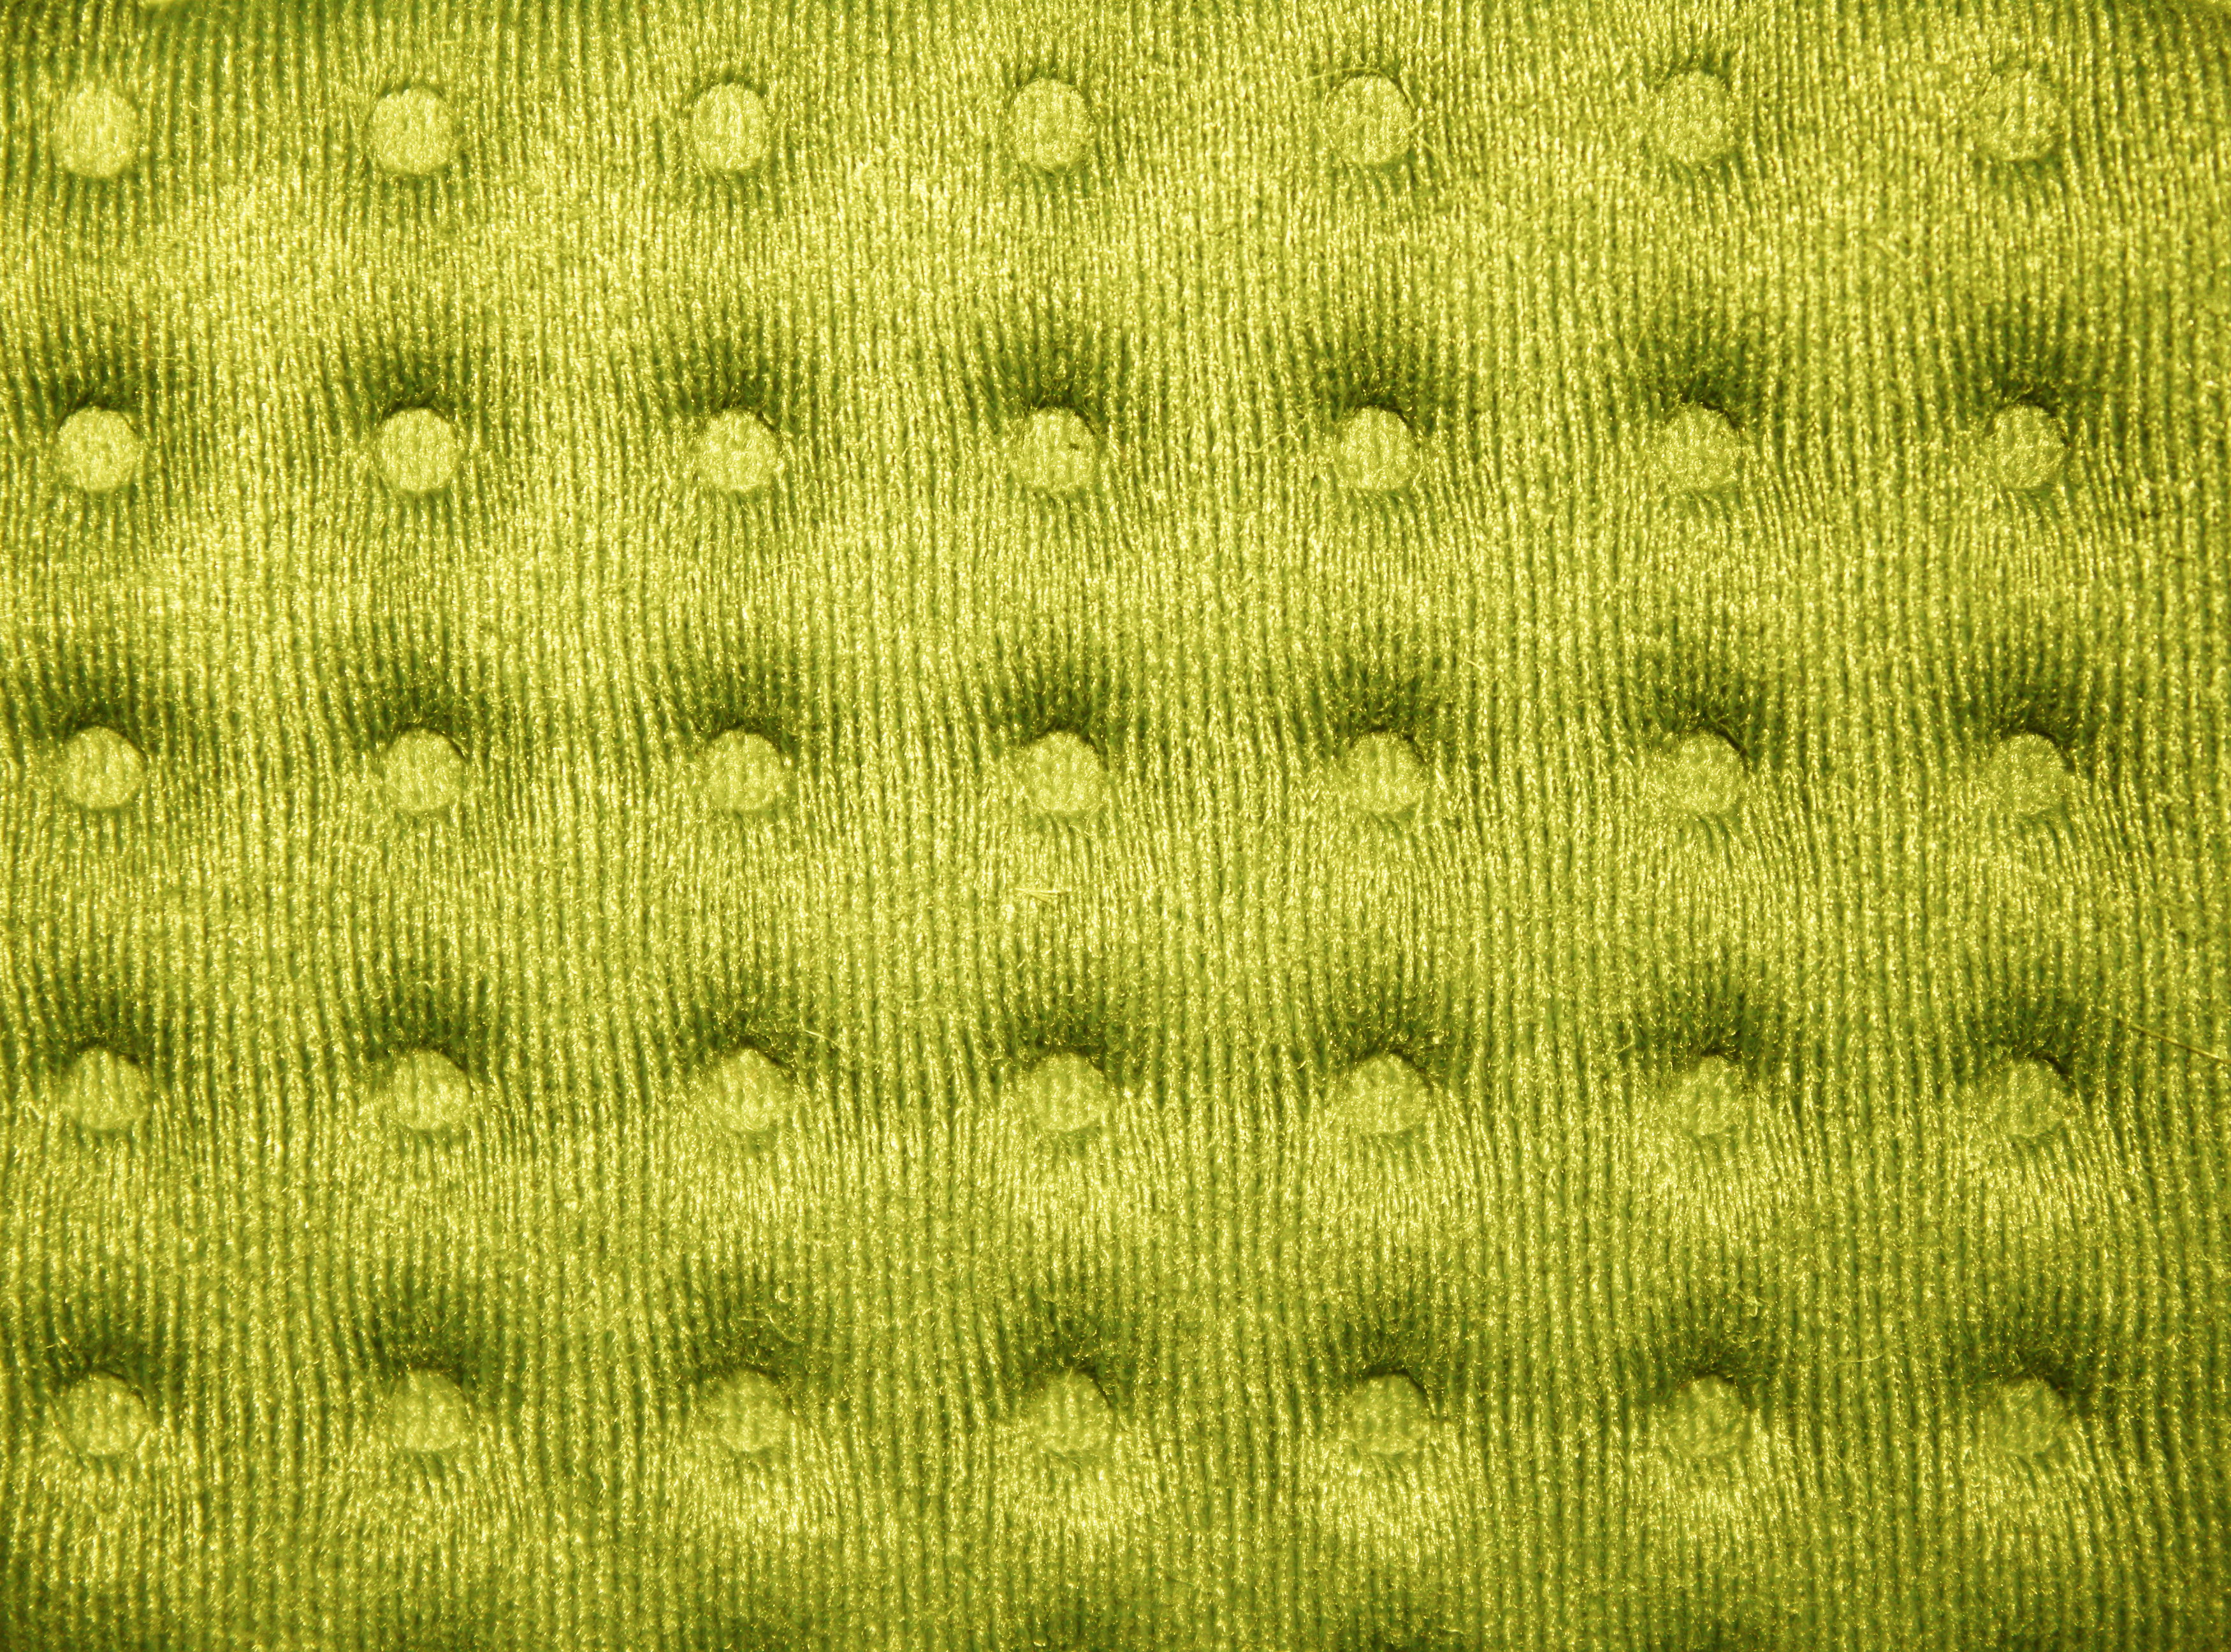 Yellow Tufted Fabric Texture Picture Free Photograph